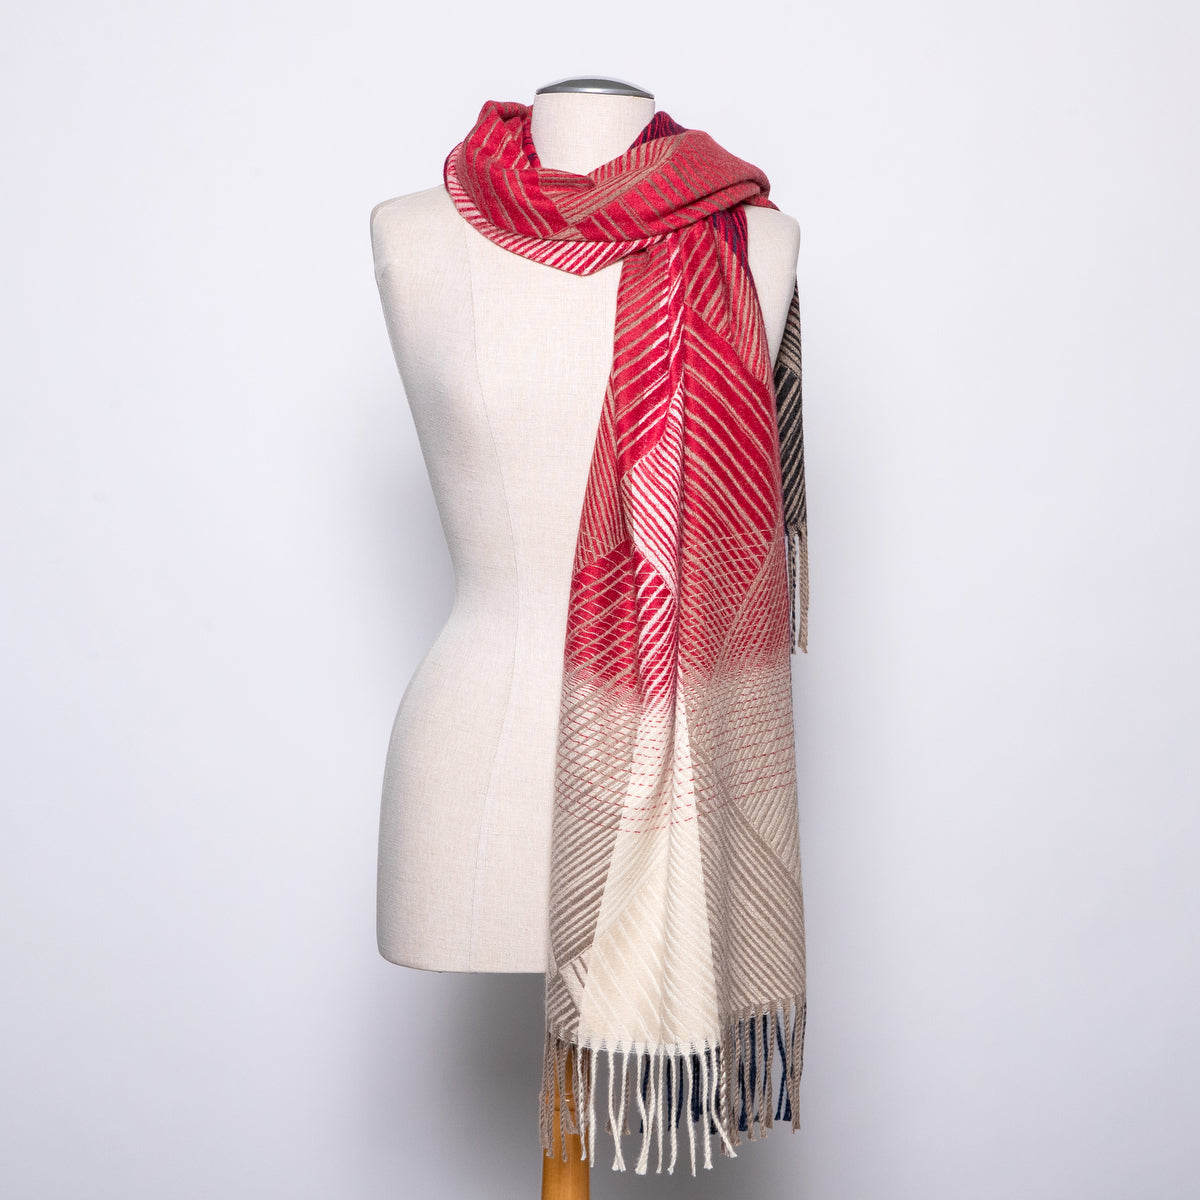 Pretty Persuasions Cross Lines Scarf in Black/Red/Beige